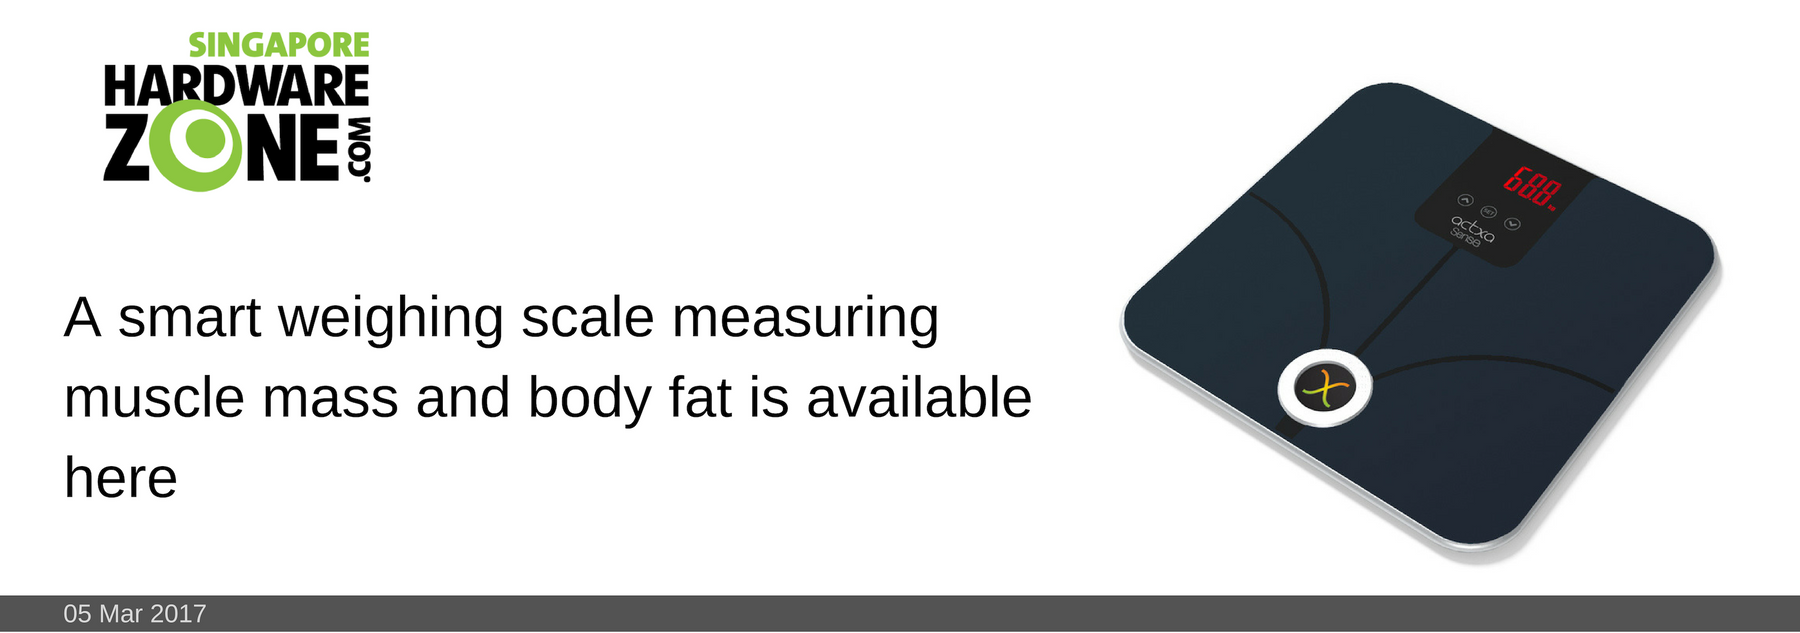 22 FEB 2017: A smart weighing scale measuring muscle mass and body fat is available here